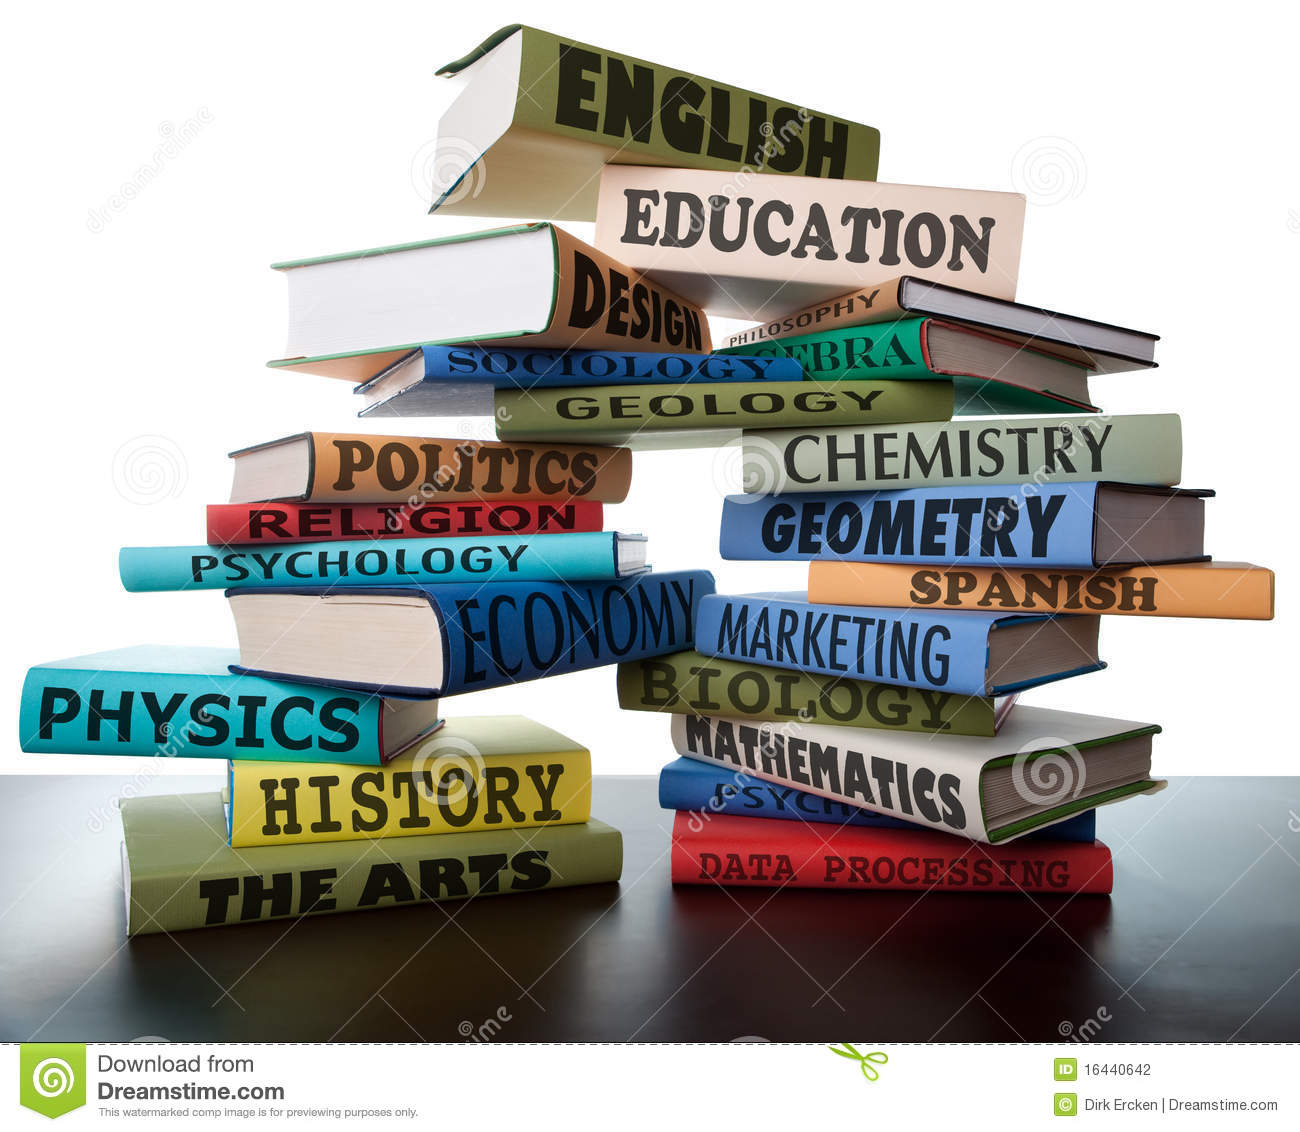 hight resolution of school books on a stack educational textbooks with text education leads to knowledge wisdom in the book for university or college